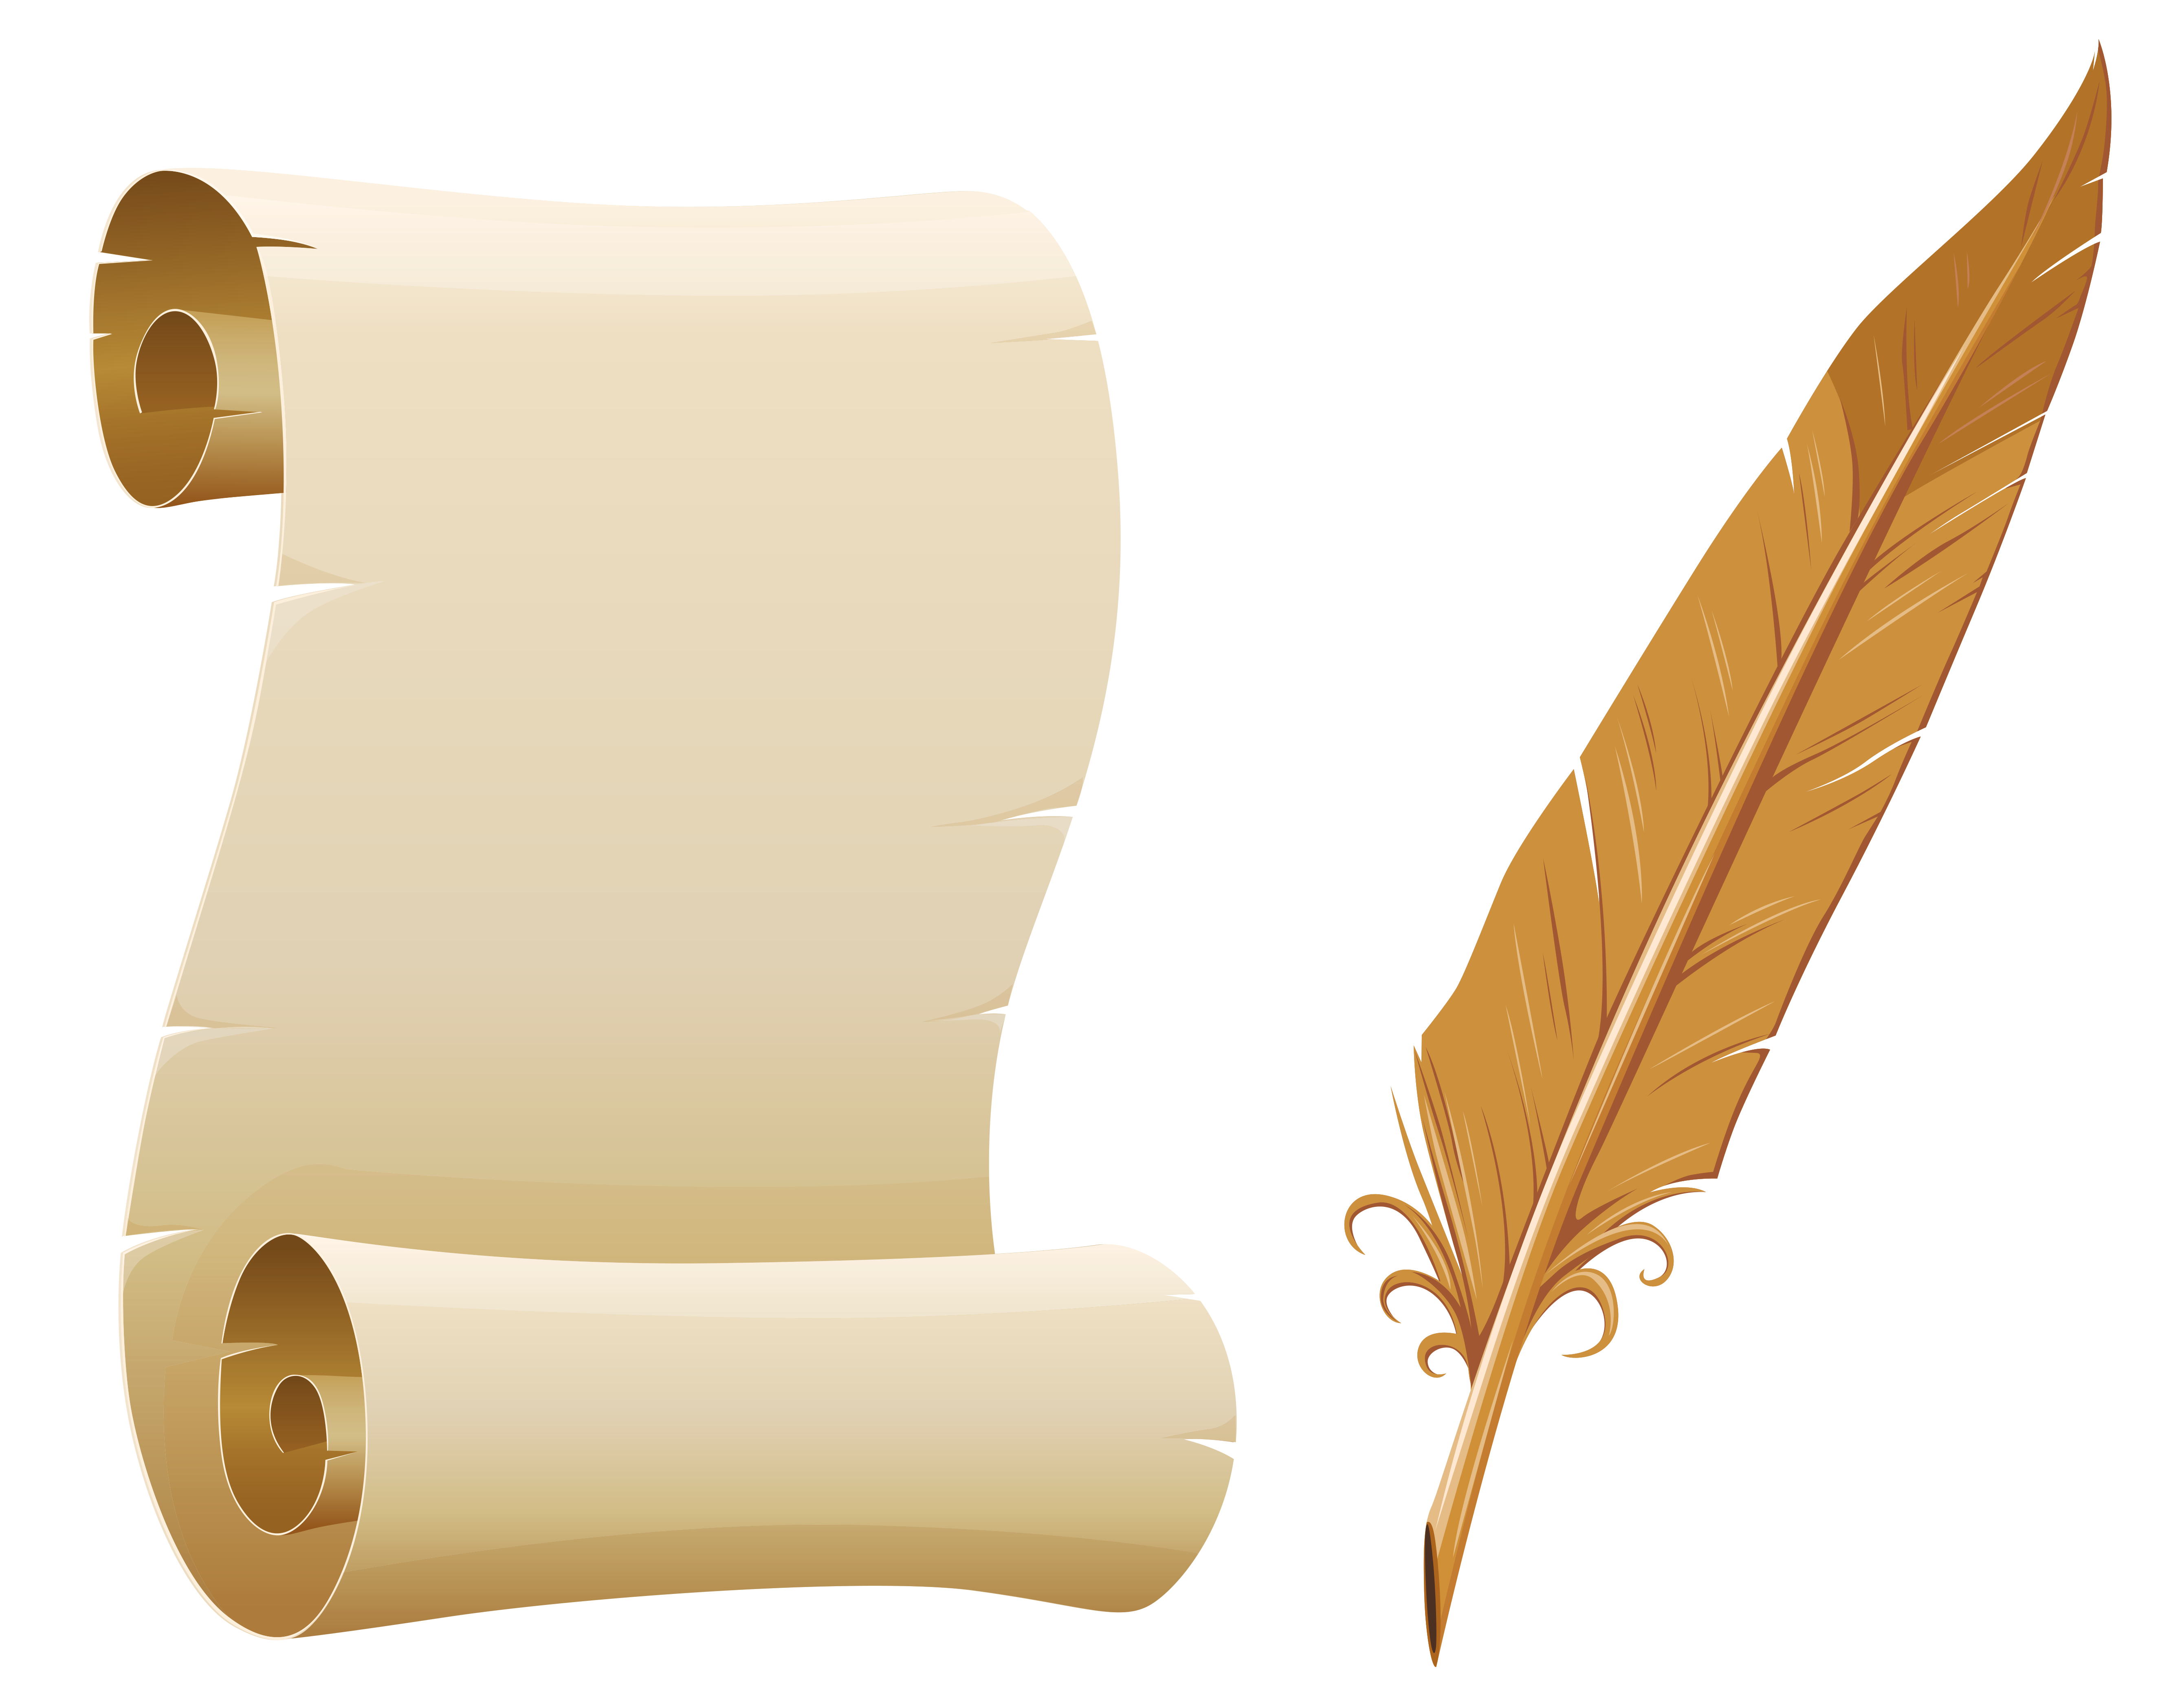 Scrolled Paper And Quill Pen Png Picture Gallery Yopriceville High Quality Images And Transparent Png Free Pergaminho Png Pergaminho Belo Papel De Parede